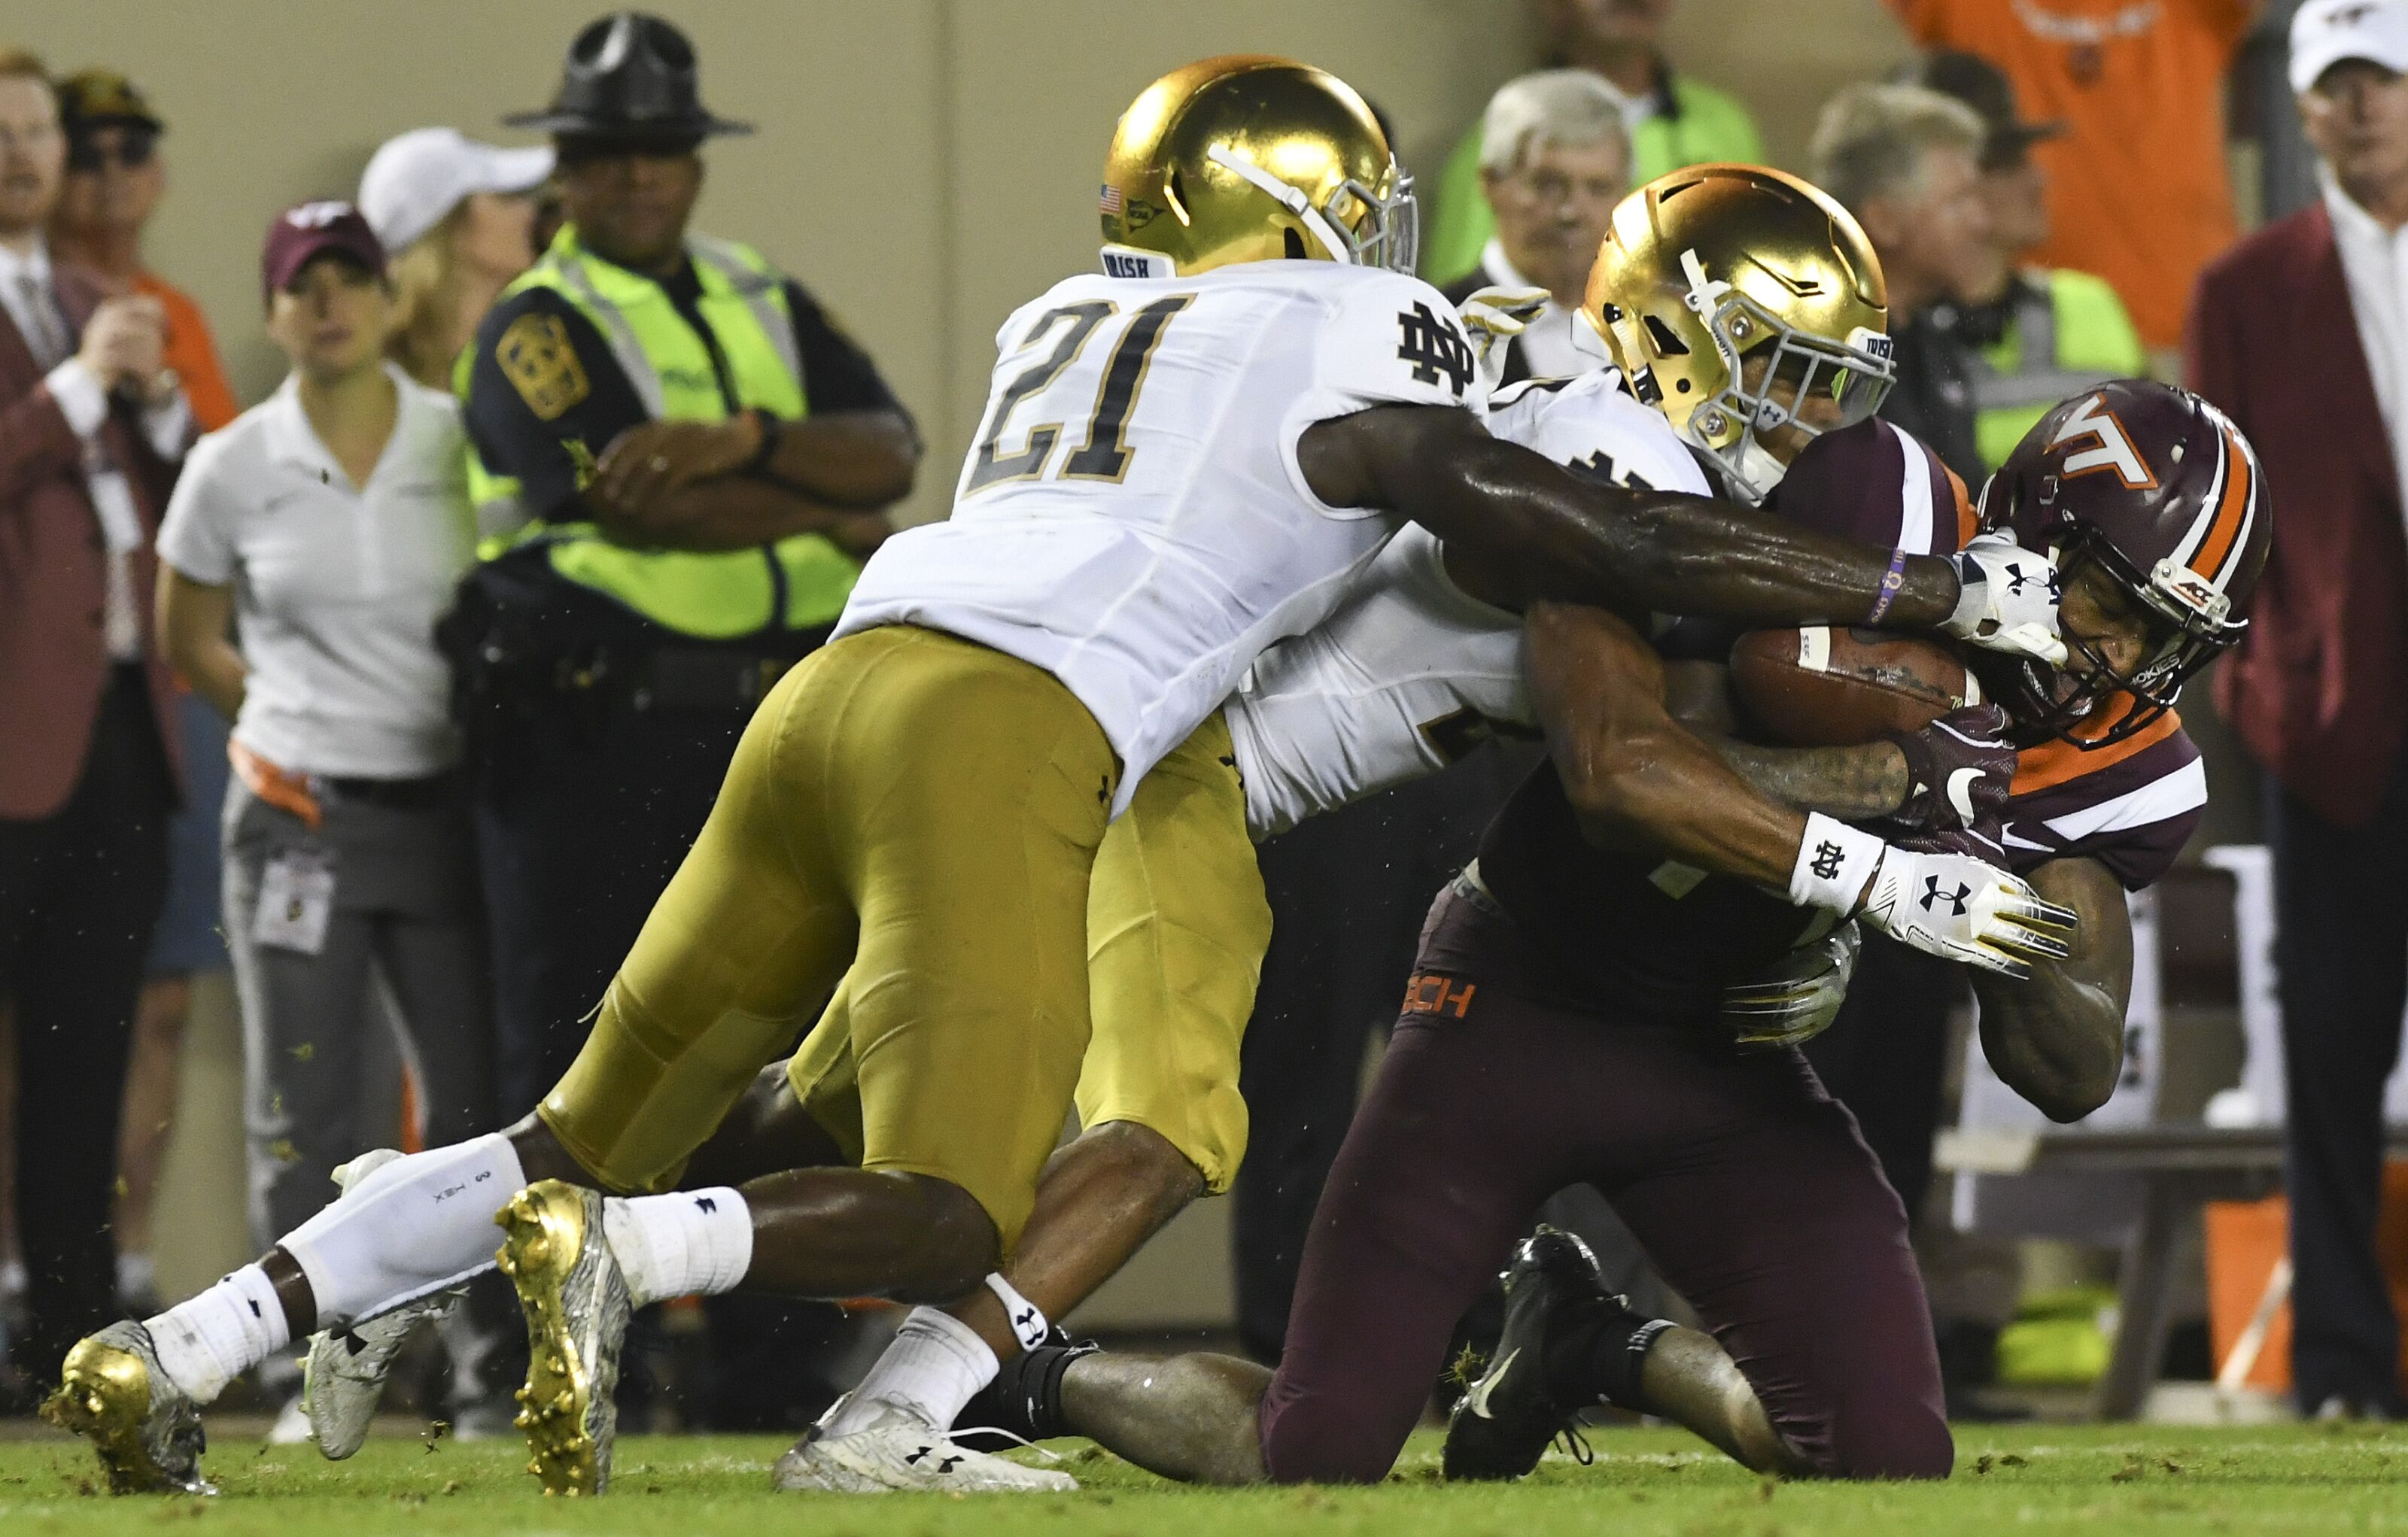 Notre Dame Football: What is the biggest potential trap game in 2019?